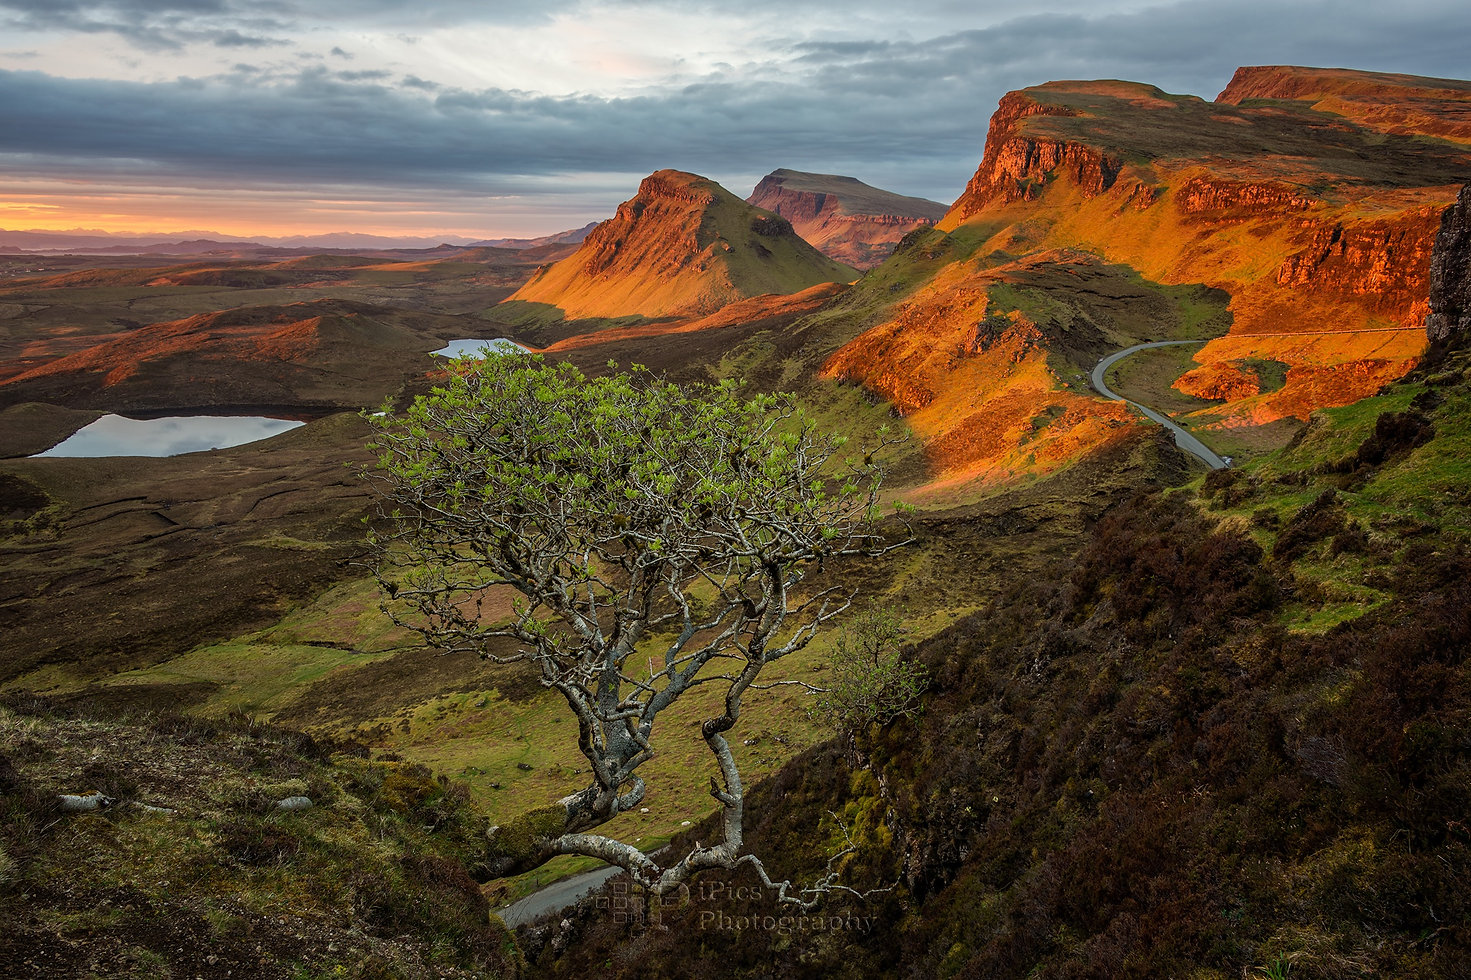 Sunrise on Isle of Skye with sun shining on the Quiraing mountains in Scotland.